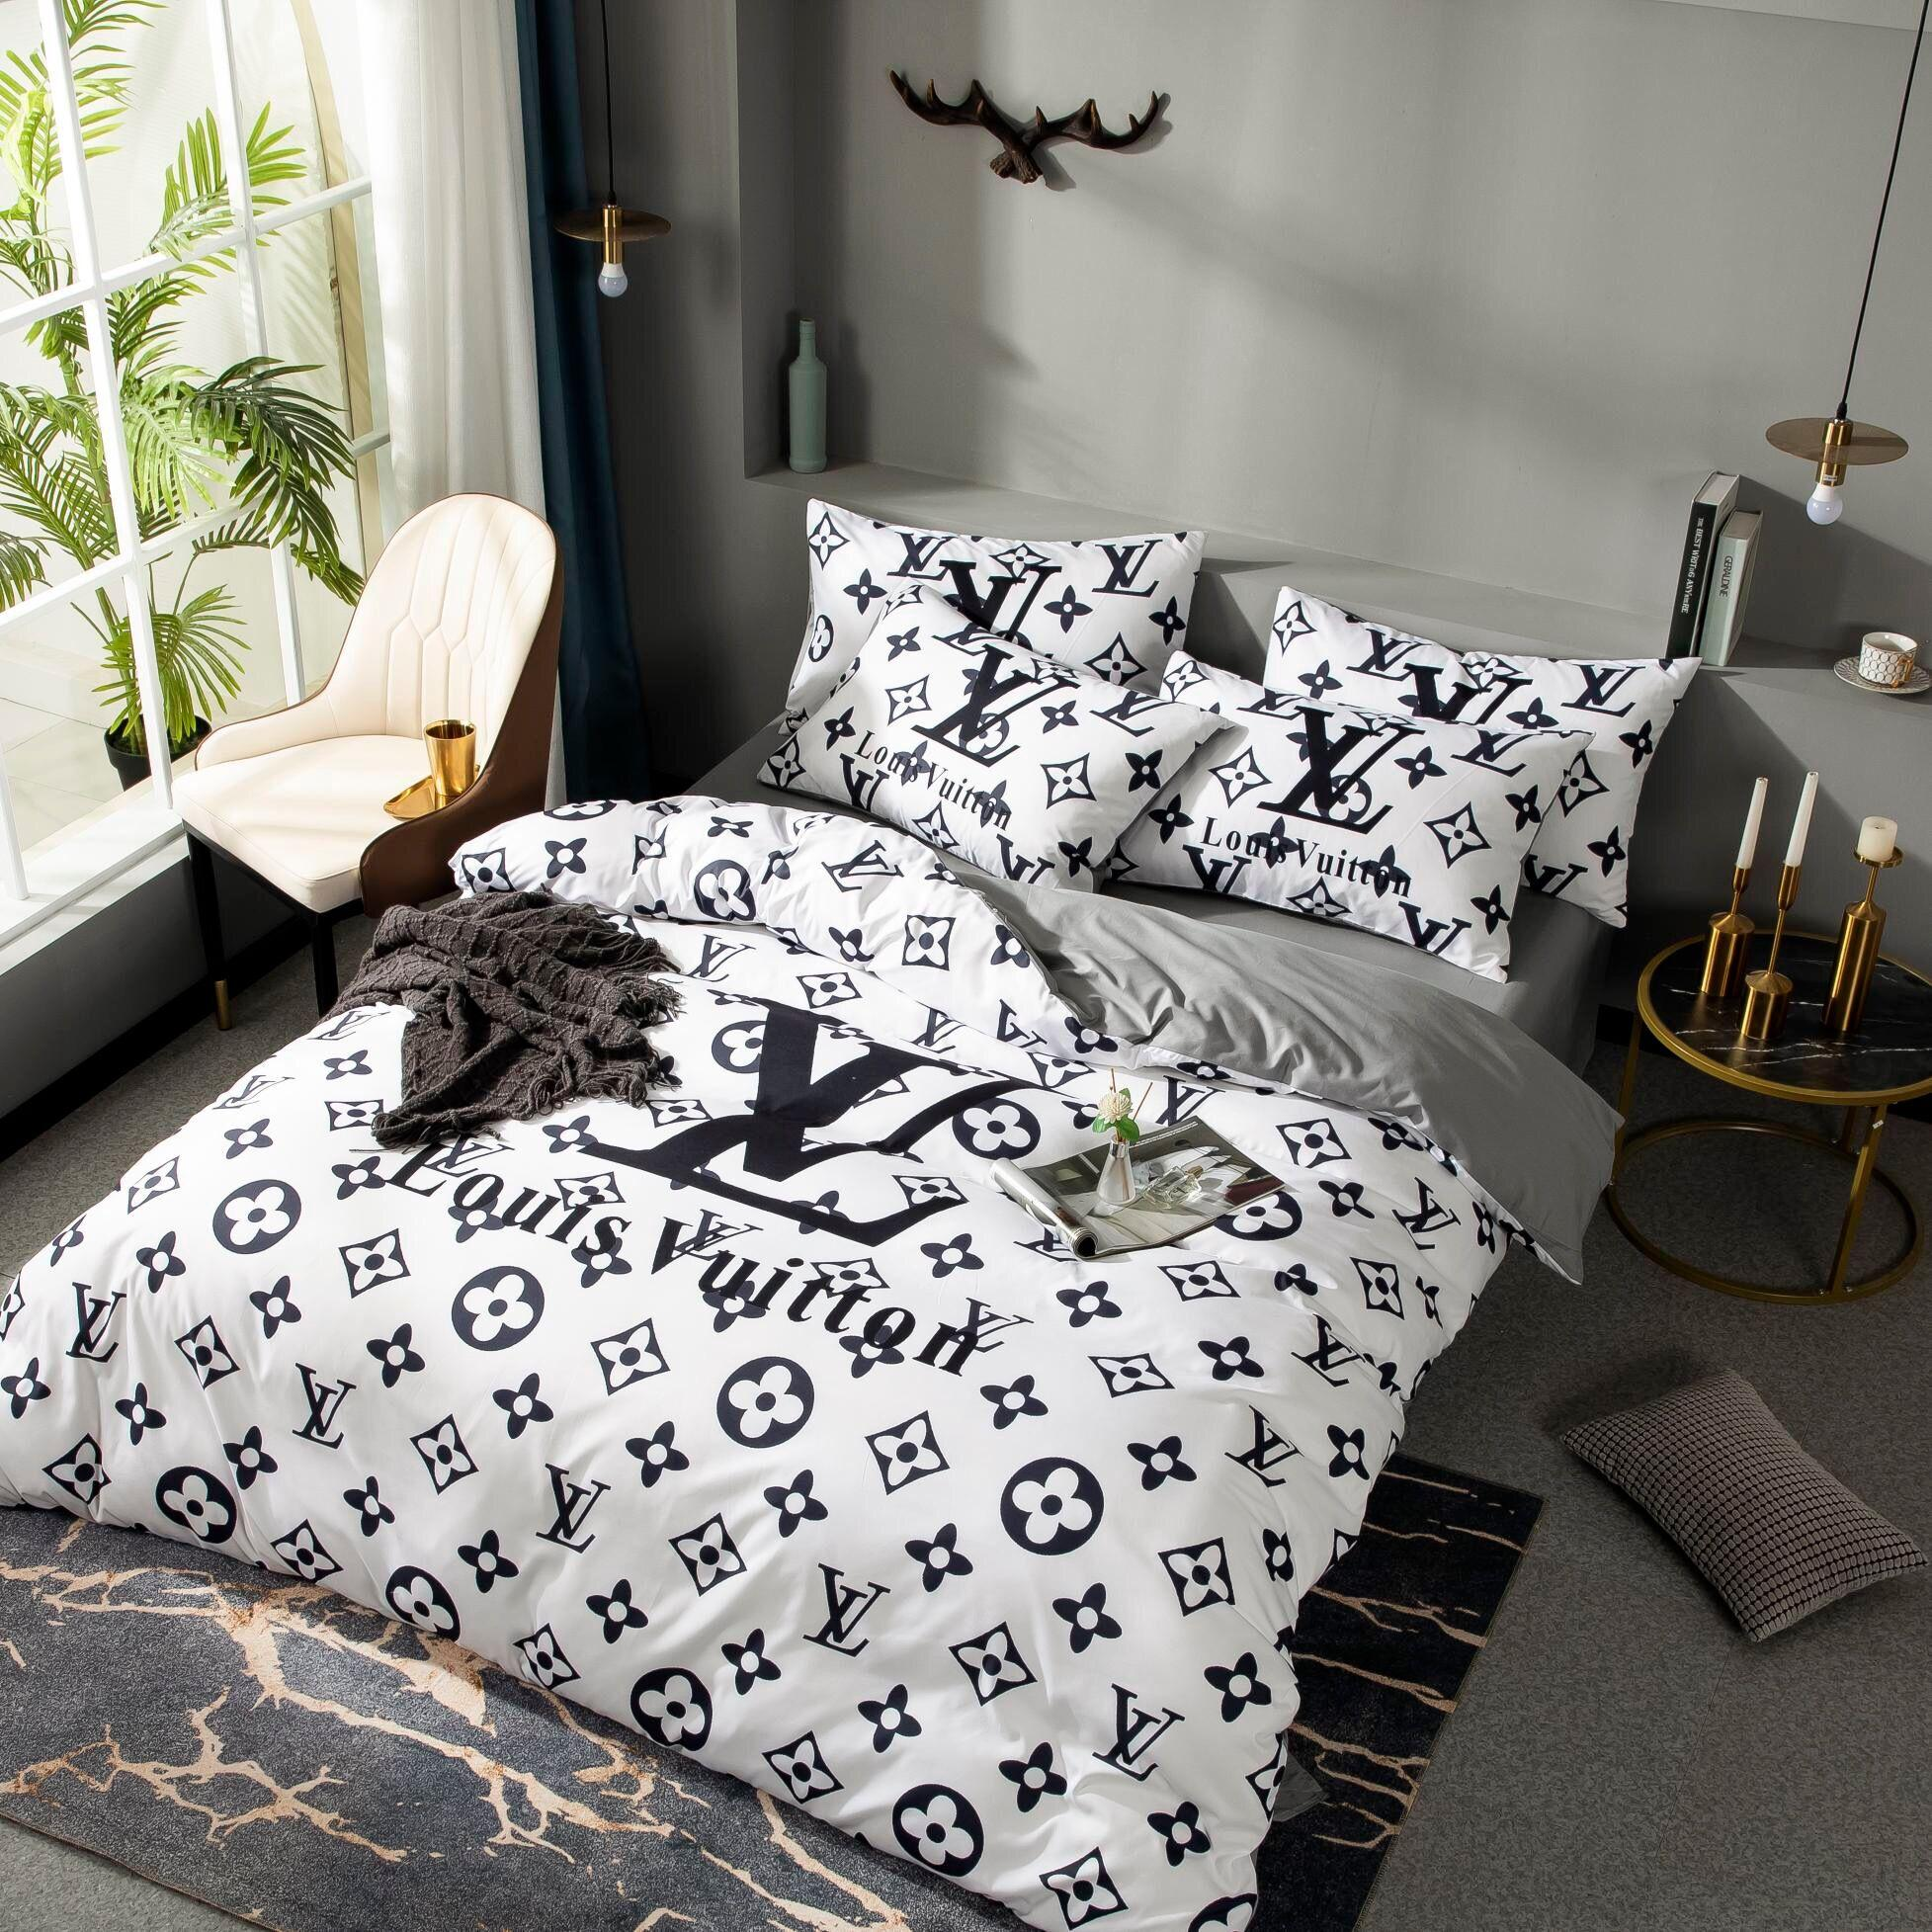 2020 L Luxury Bedding Sets Black And White Designer Duvet Cover Set Cotton Designer Bed Sheets Queen Bed Sets Simple Designer Bedding Yellow Duvet Cover Best Bedding From Designer Home 104 16 Dhgate Com